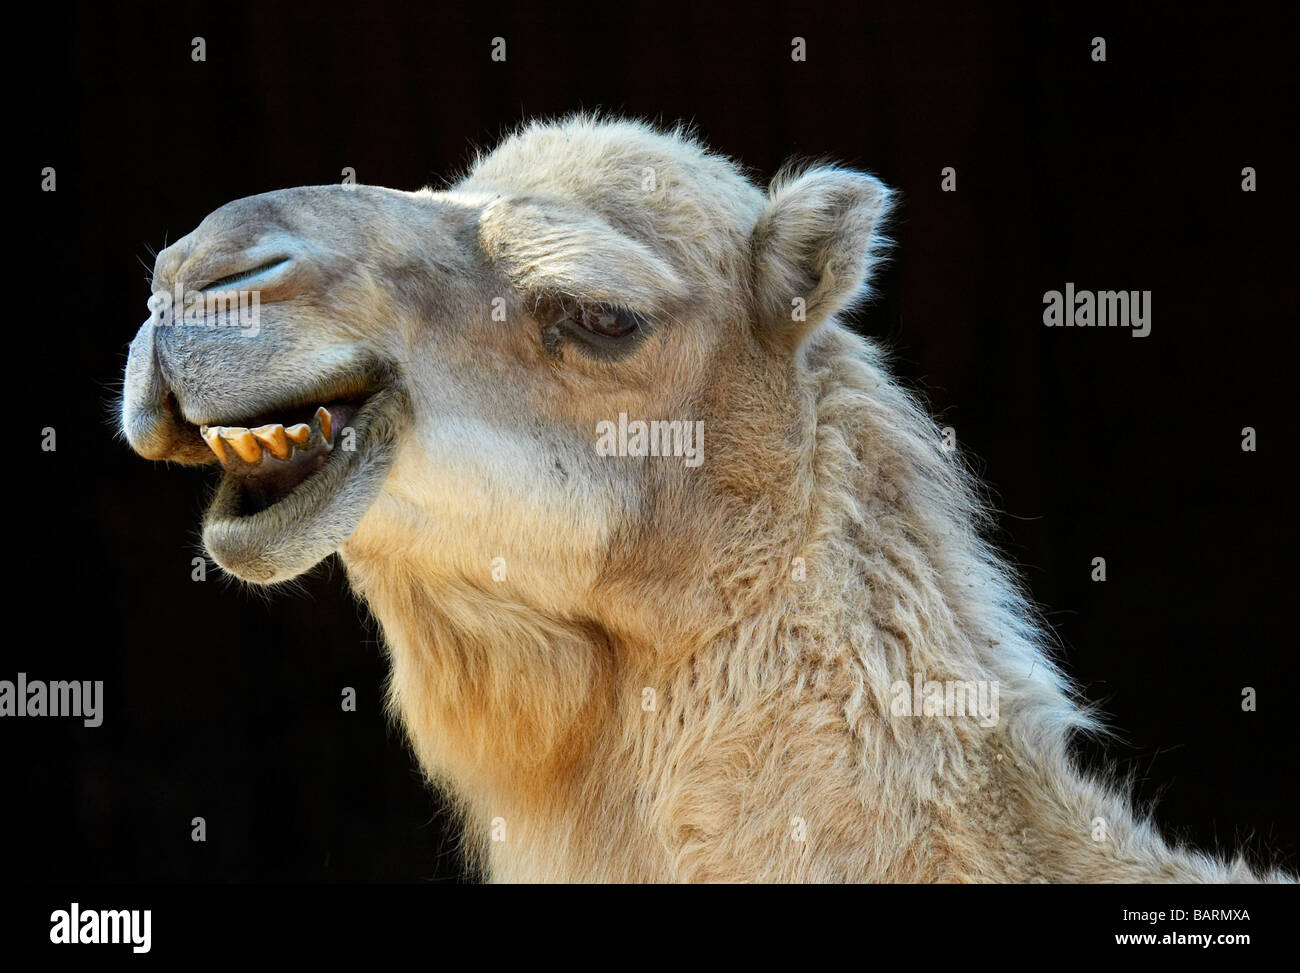 camel smiling with black background - Stock Image